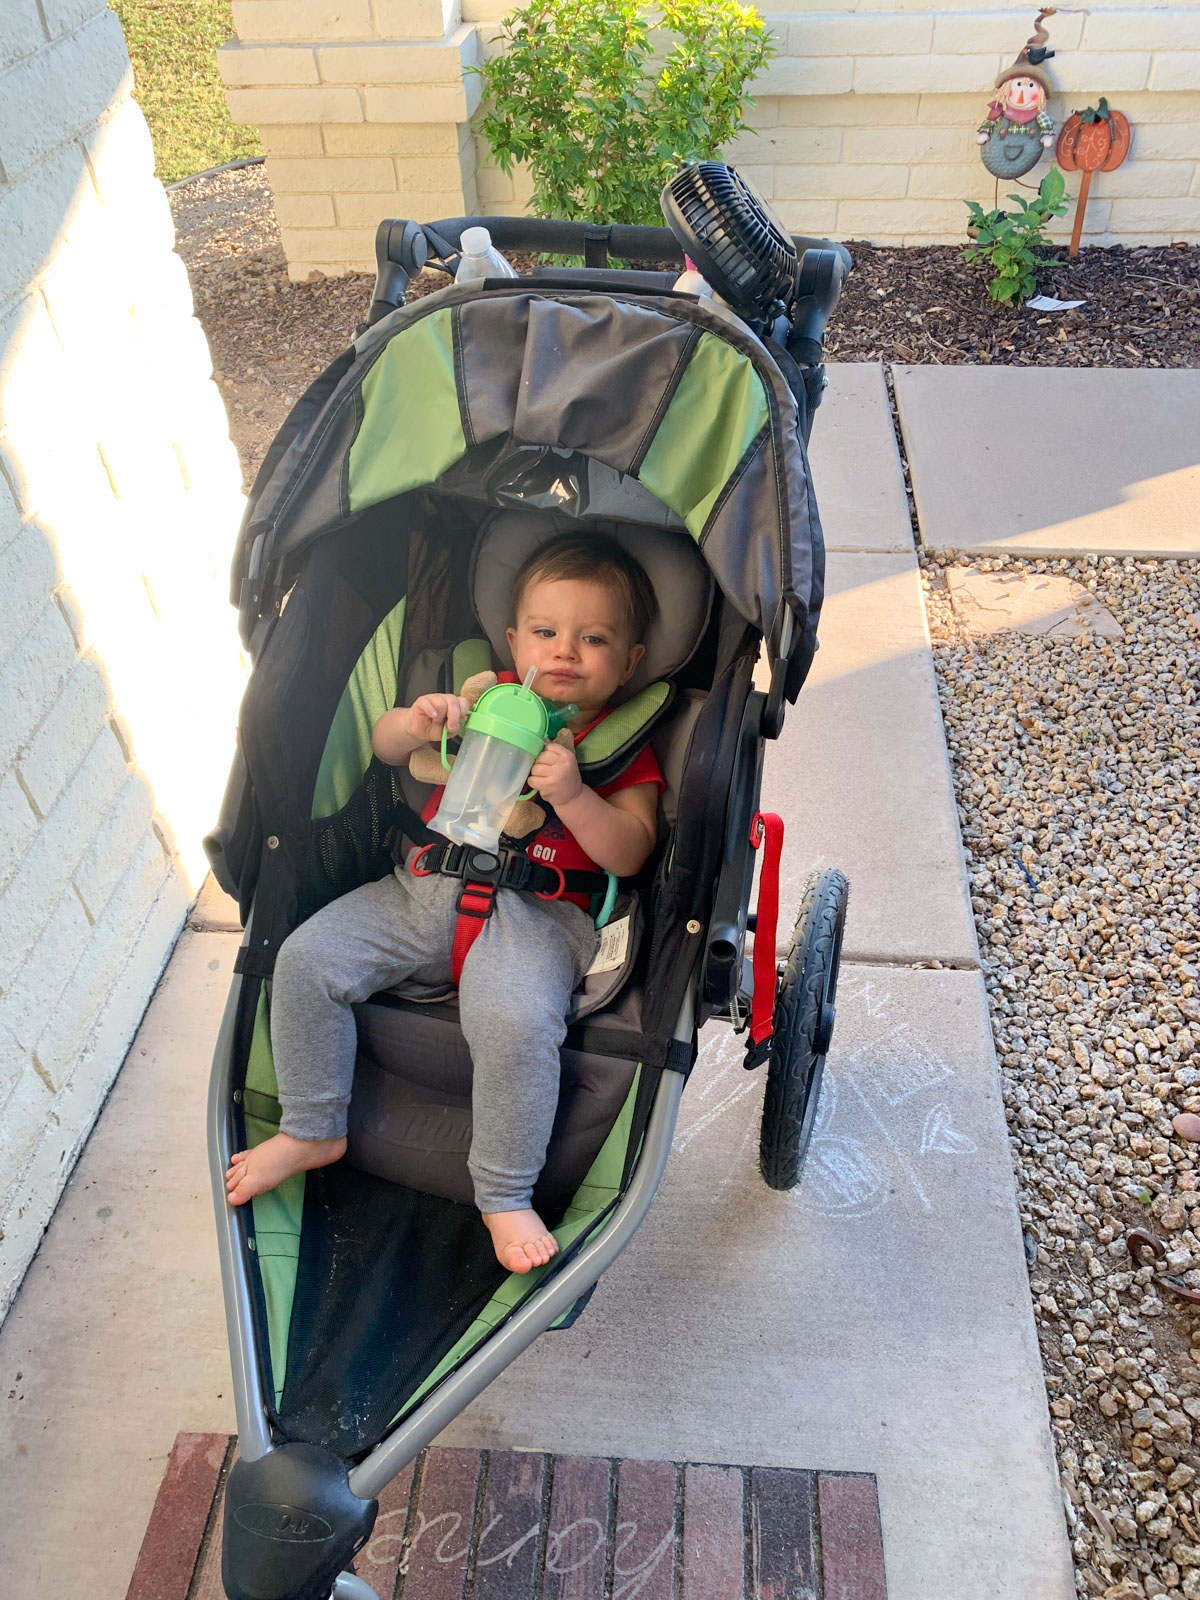 12 month old baby in stroller